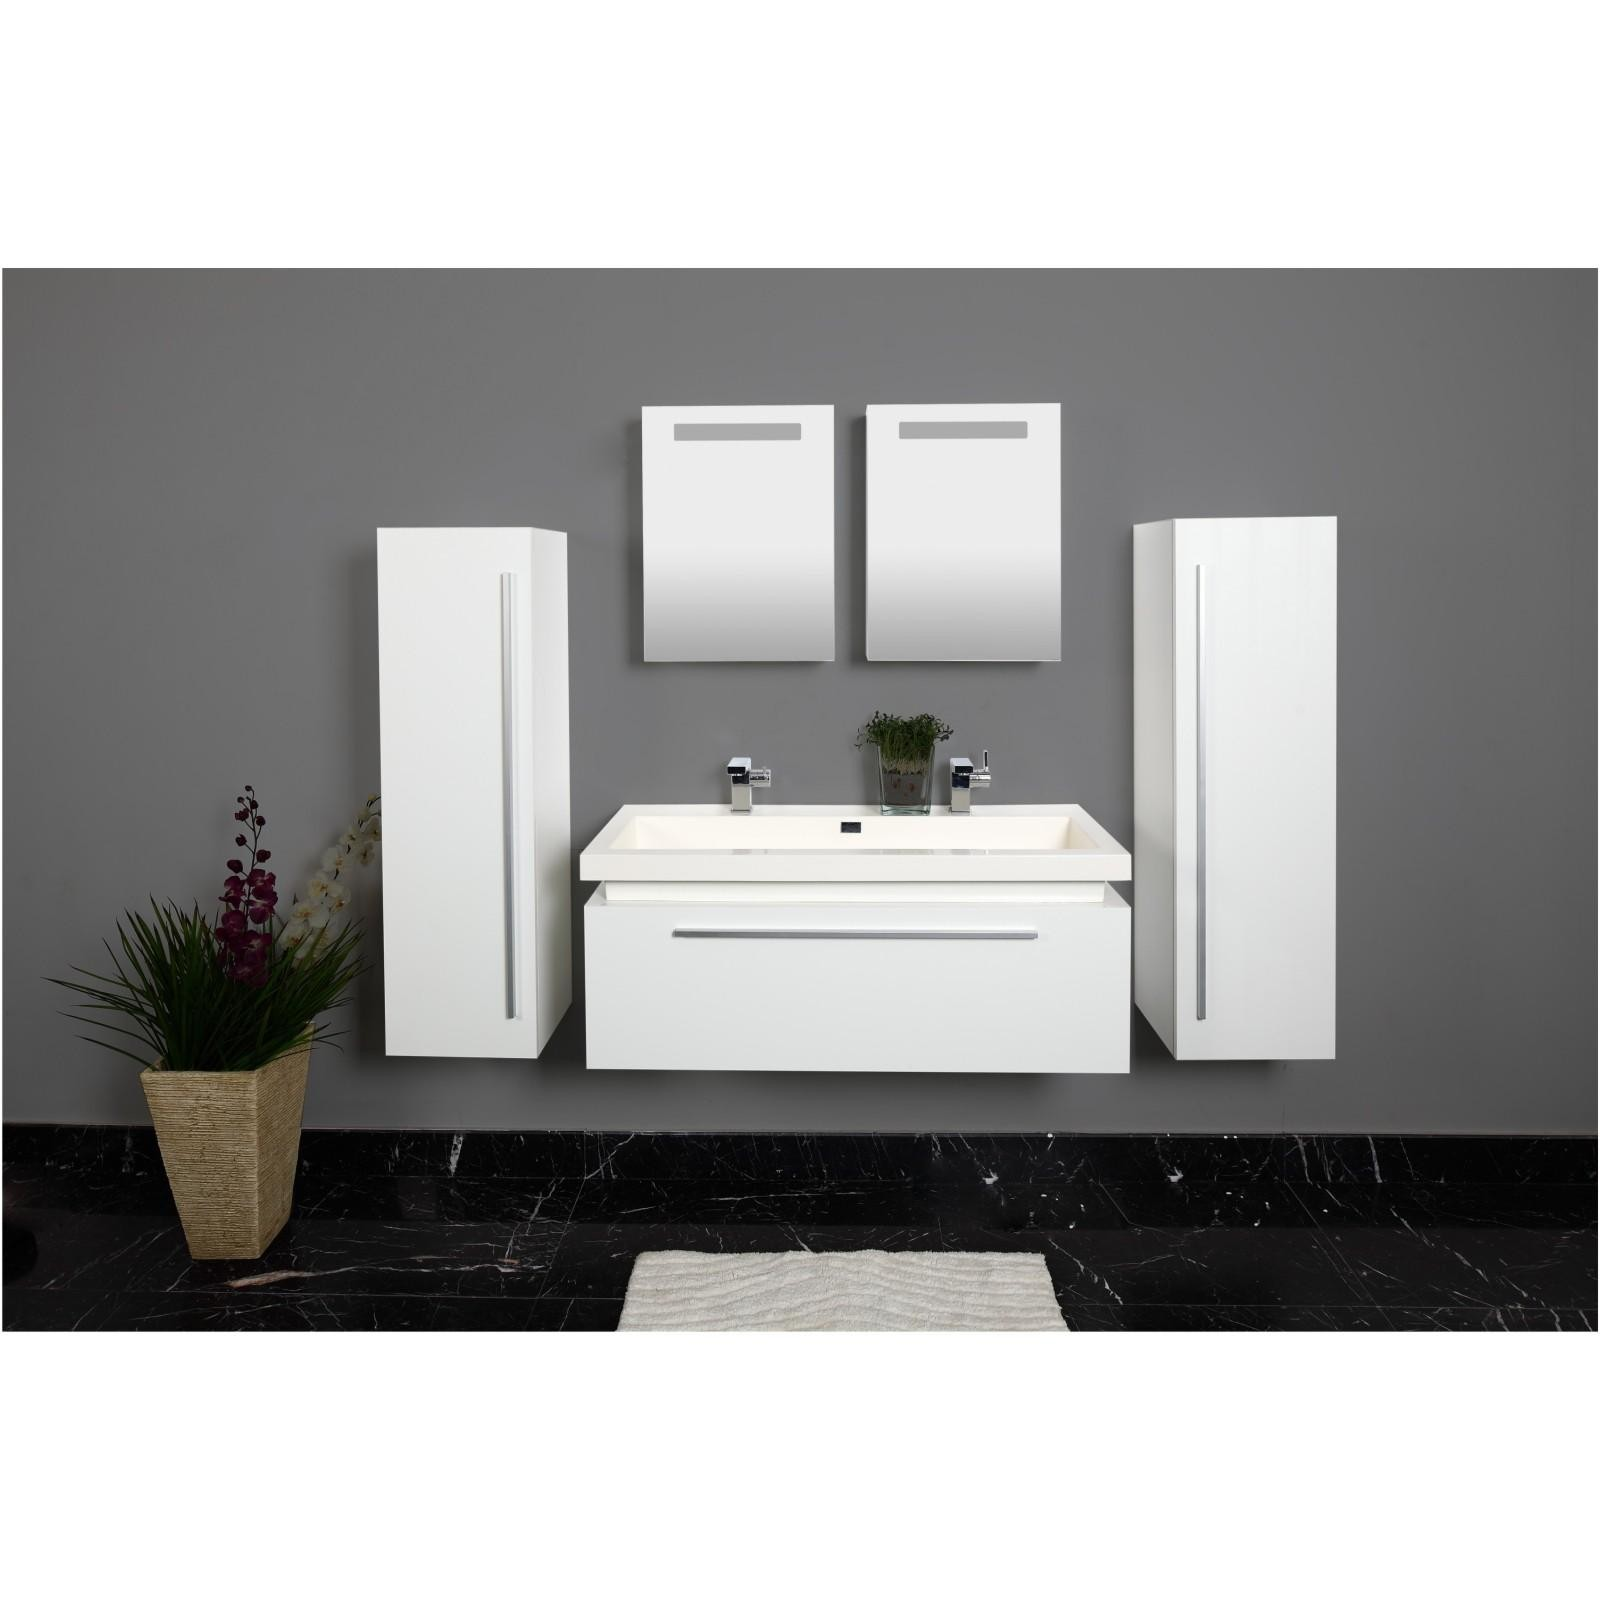 badezimmer badm bel set 5tlg weiss doppelwaschbecken spiegelschr nke. Black Bedroom Furniture Sets. Home Design Ideas